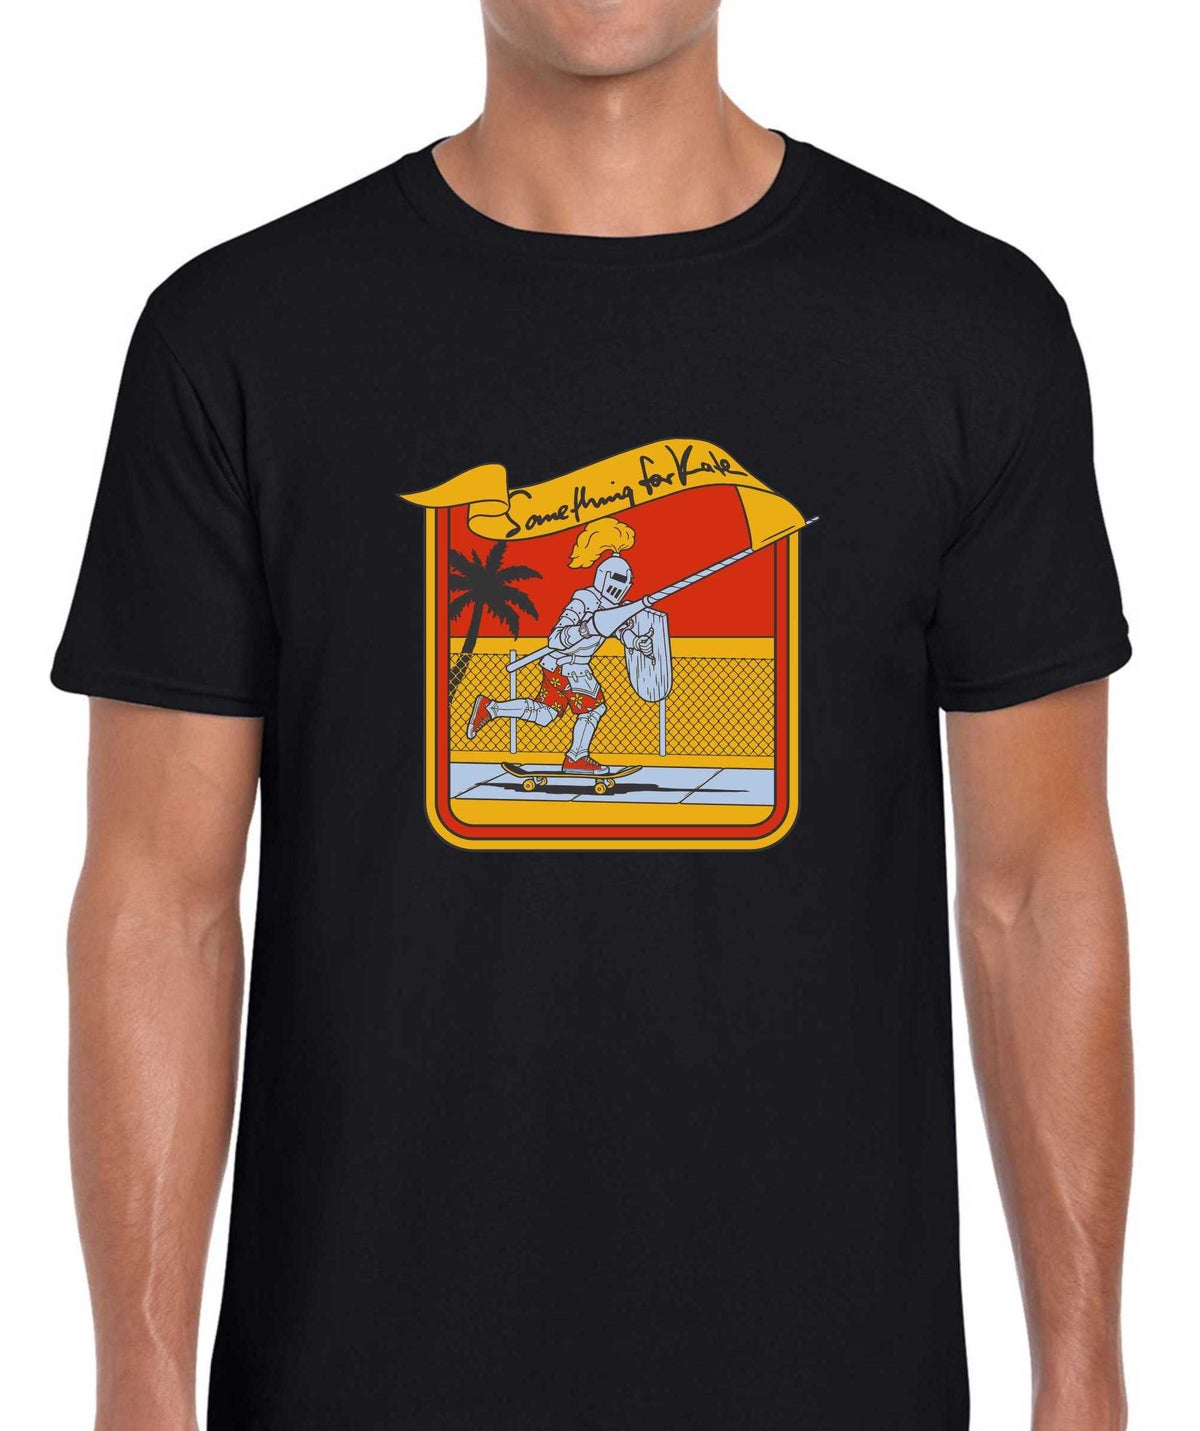 Image of Something for Kate Jousting skater t-shirt -adults & kids sizes!